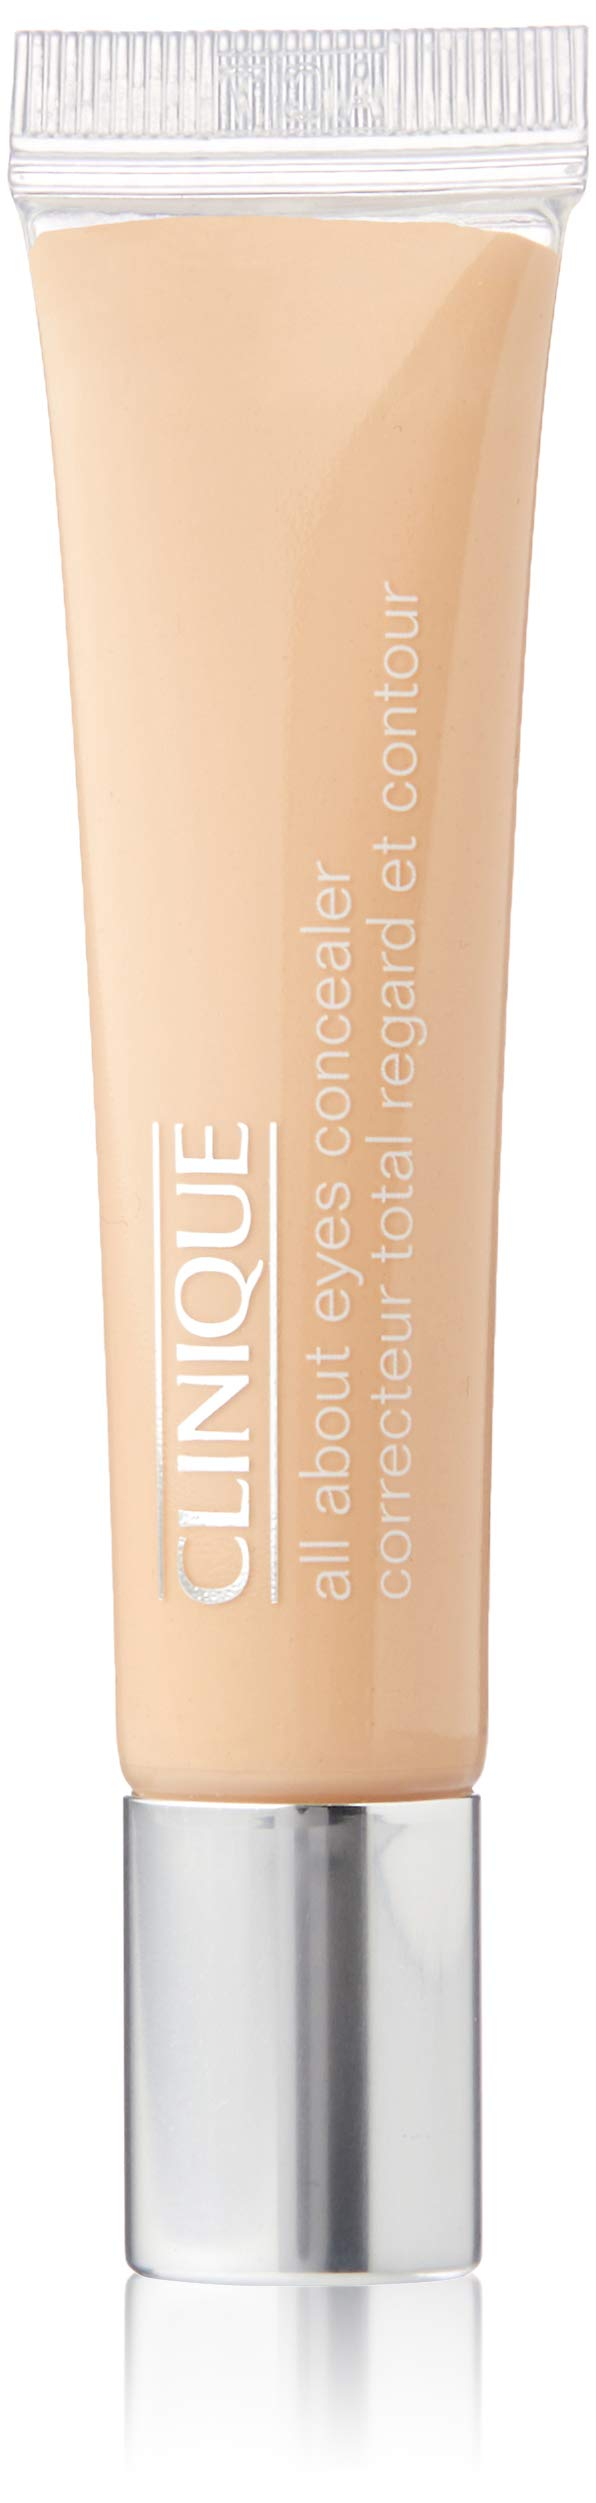 Clinique All About Eyes Concealer Light Neutral for Women, 0.33 Ounce by Clinique